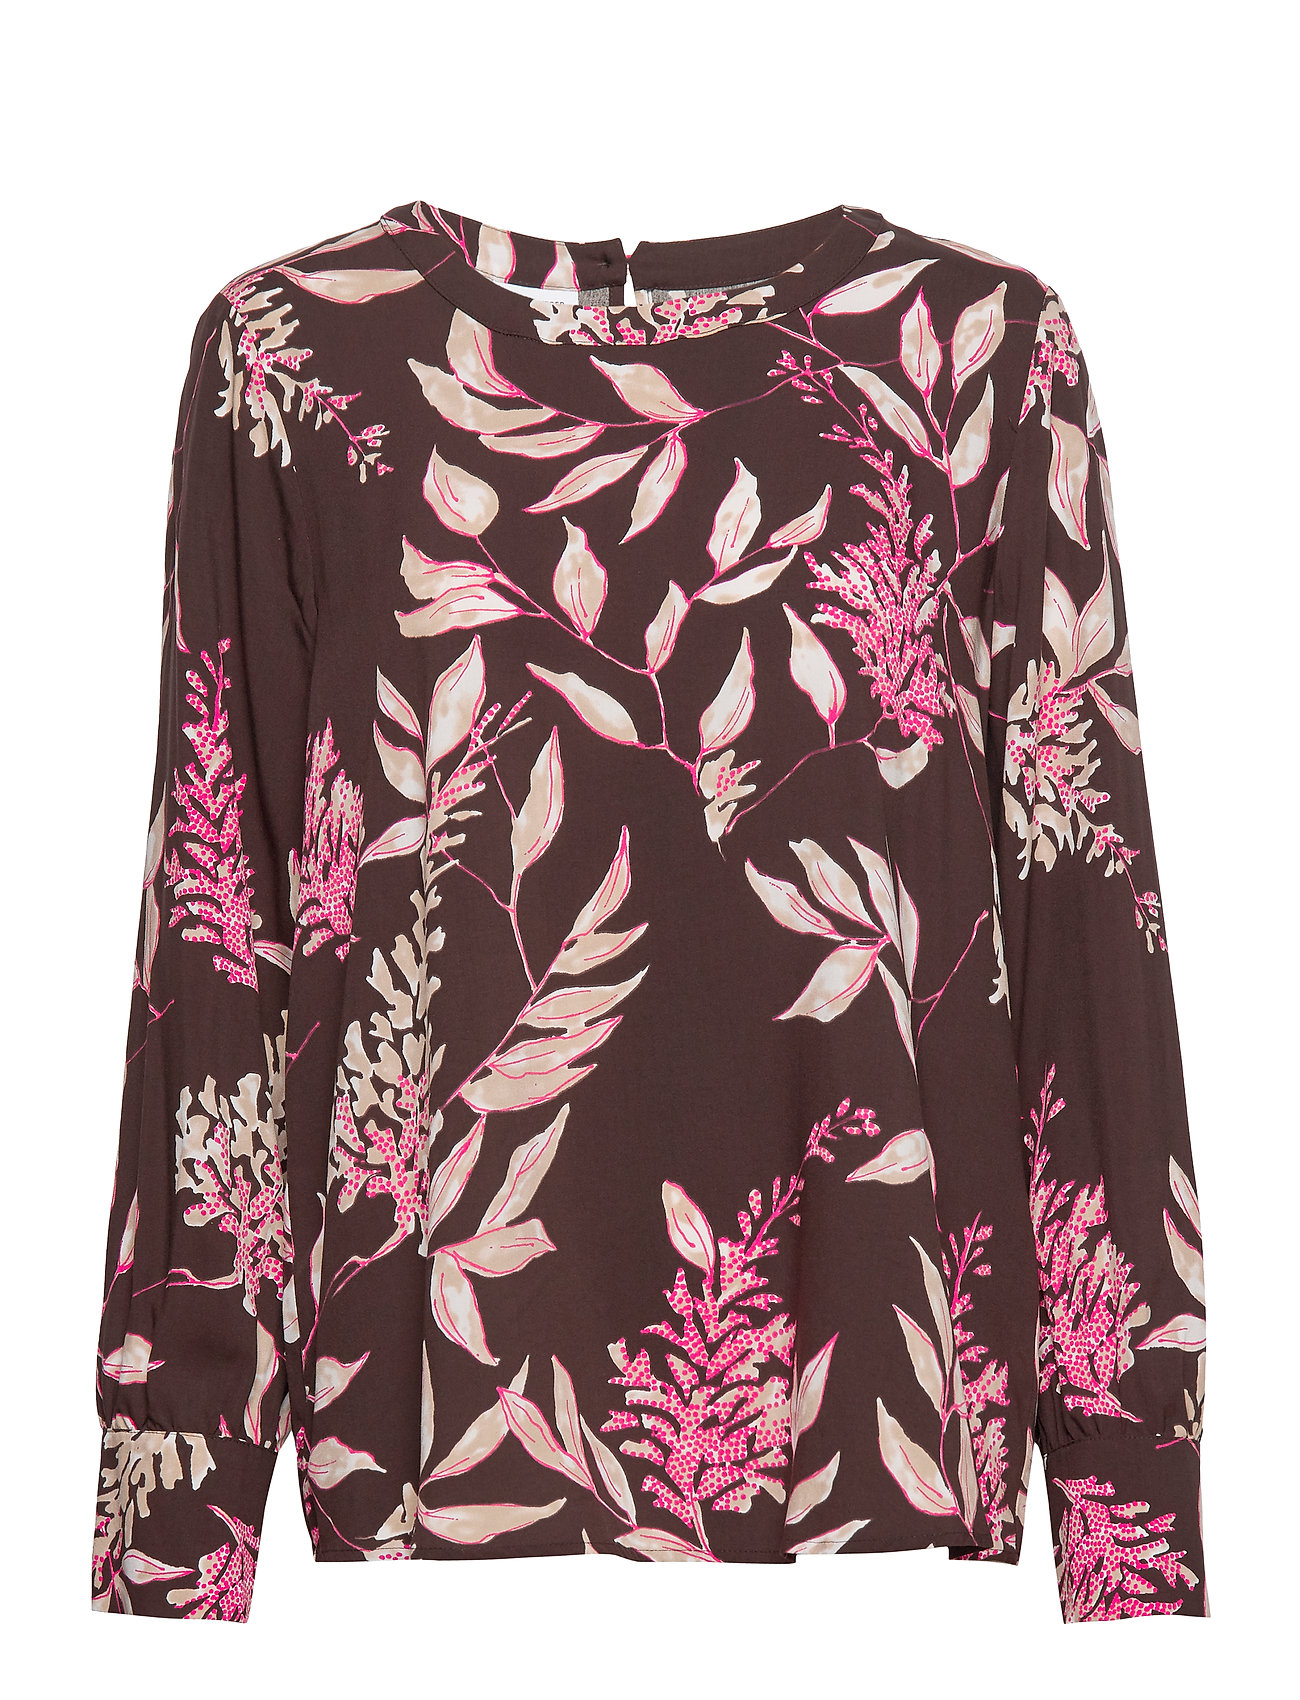 Gerry Weber BLOUSE LONG-SLEEVE - CHOCLATE/ PINK/ ECRU PRINT